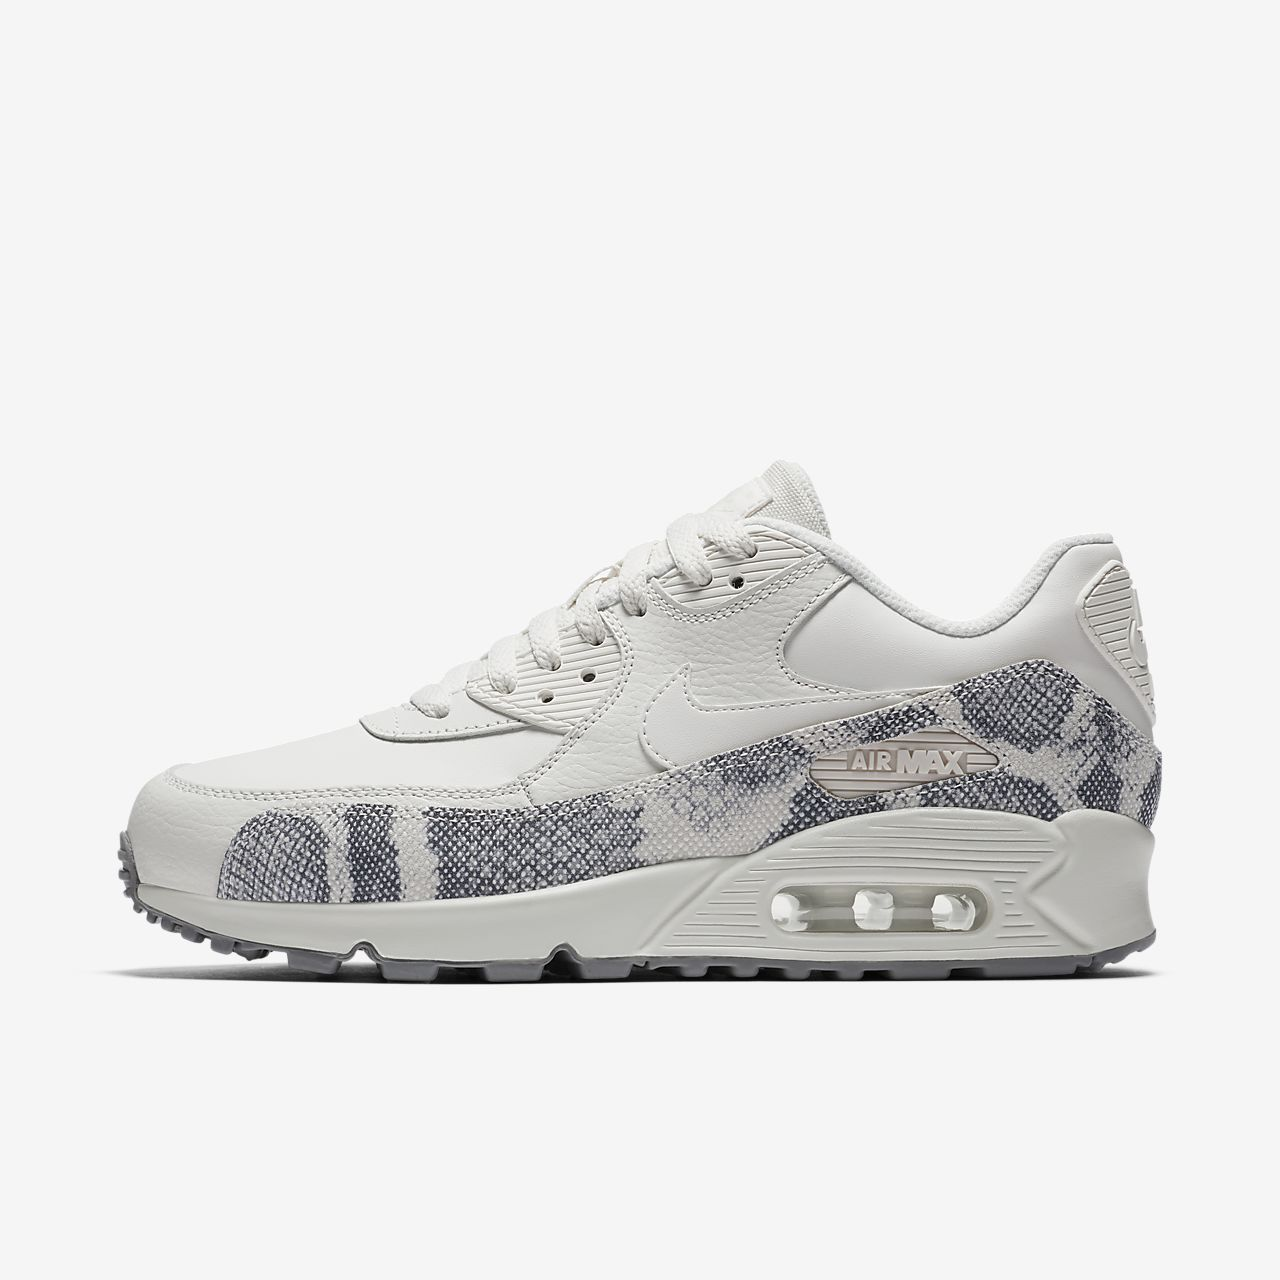 Wmns Nike Air Max 90 Whitepages De Prime